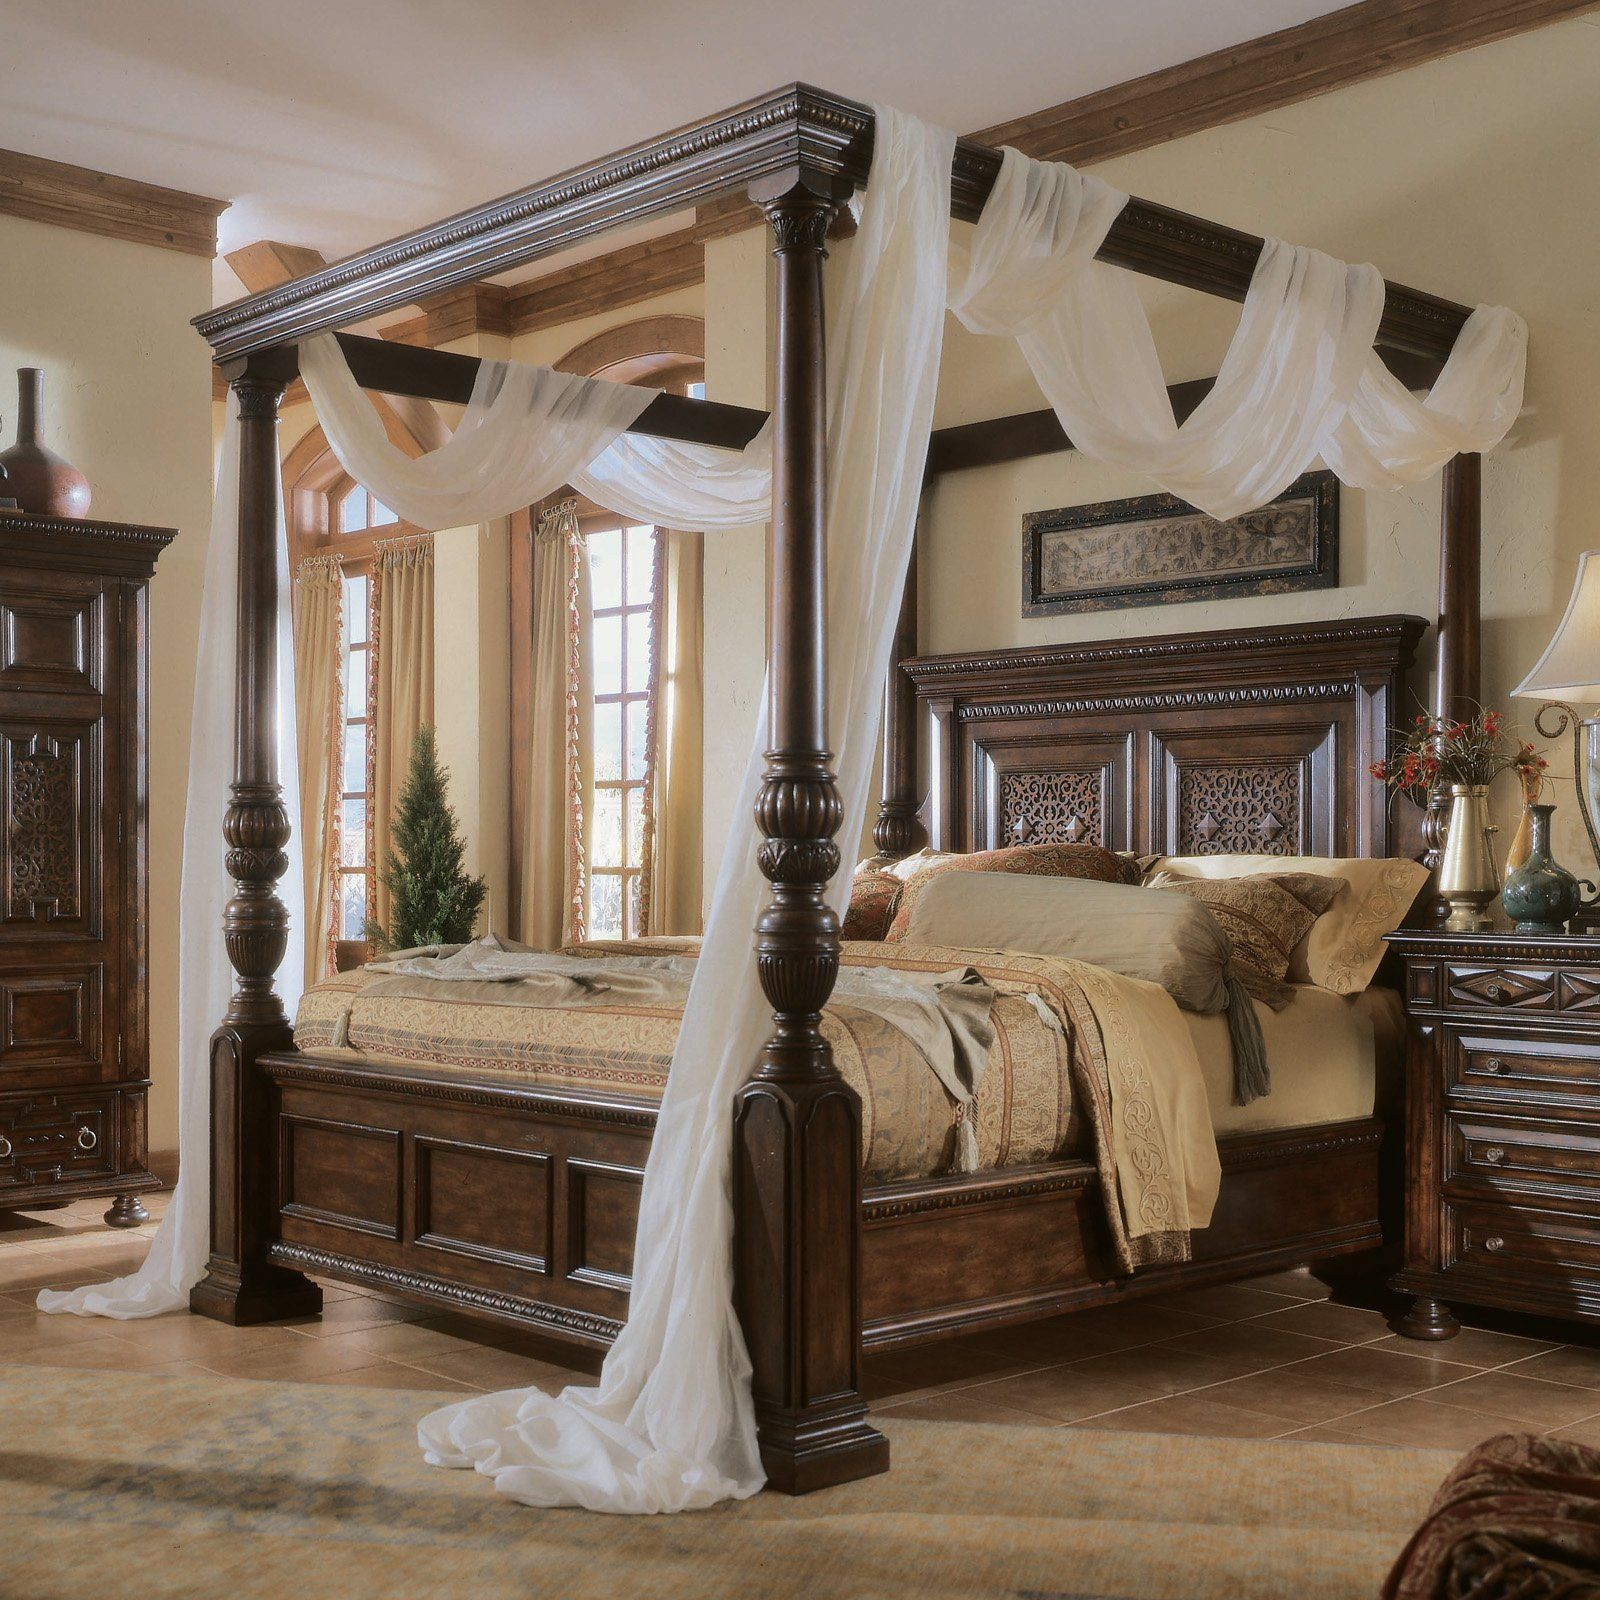 Canopy Bedroom Ideas 15 Most Beautiful Decorated And Designed Beds  Canopy Damask .